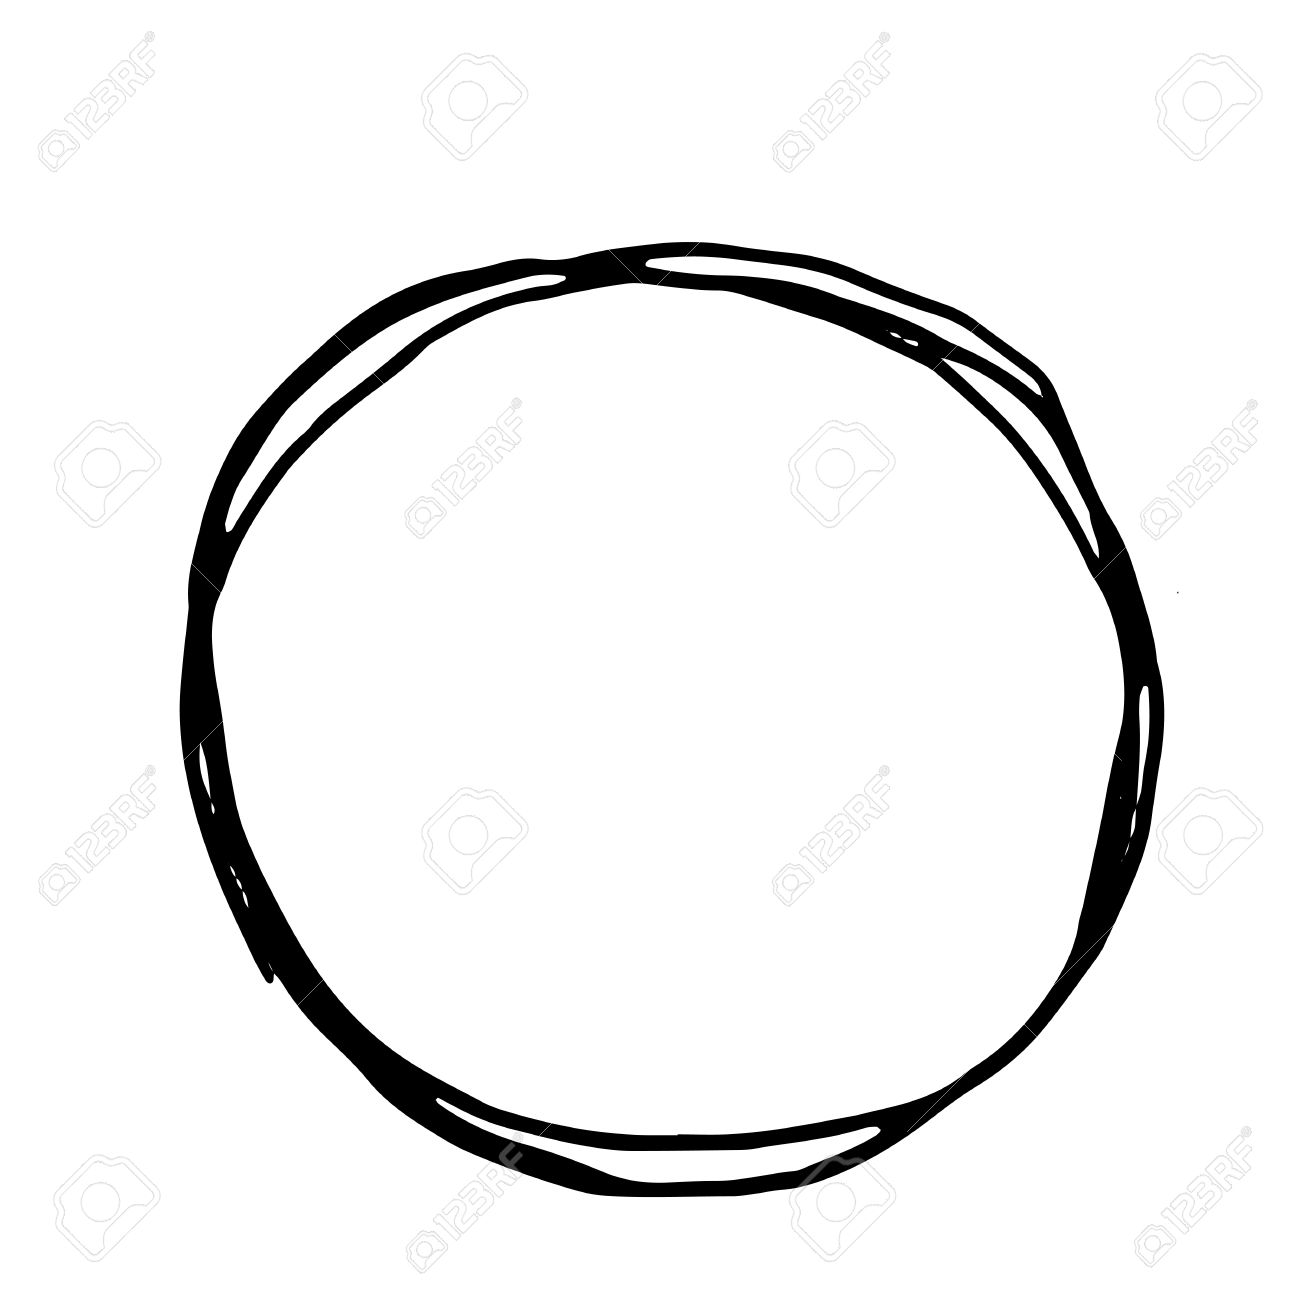 1300x1300 Circle Clipart Hand Drawn